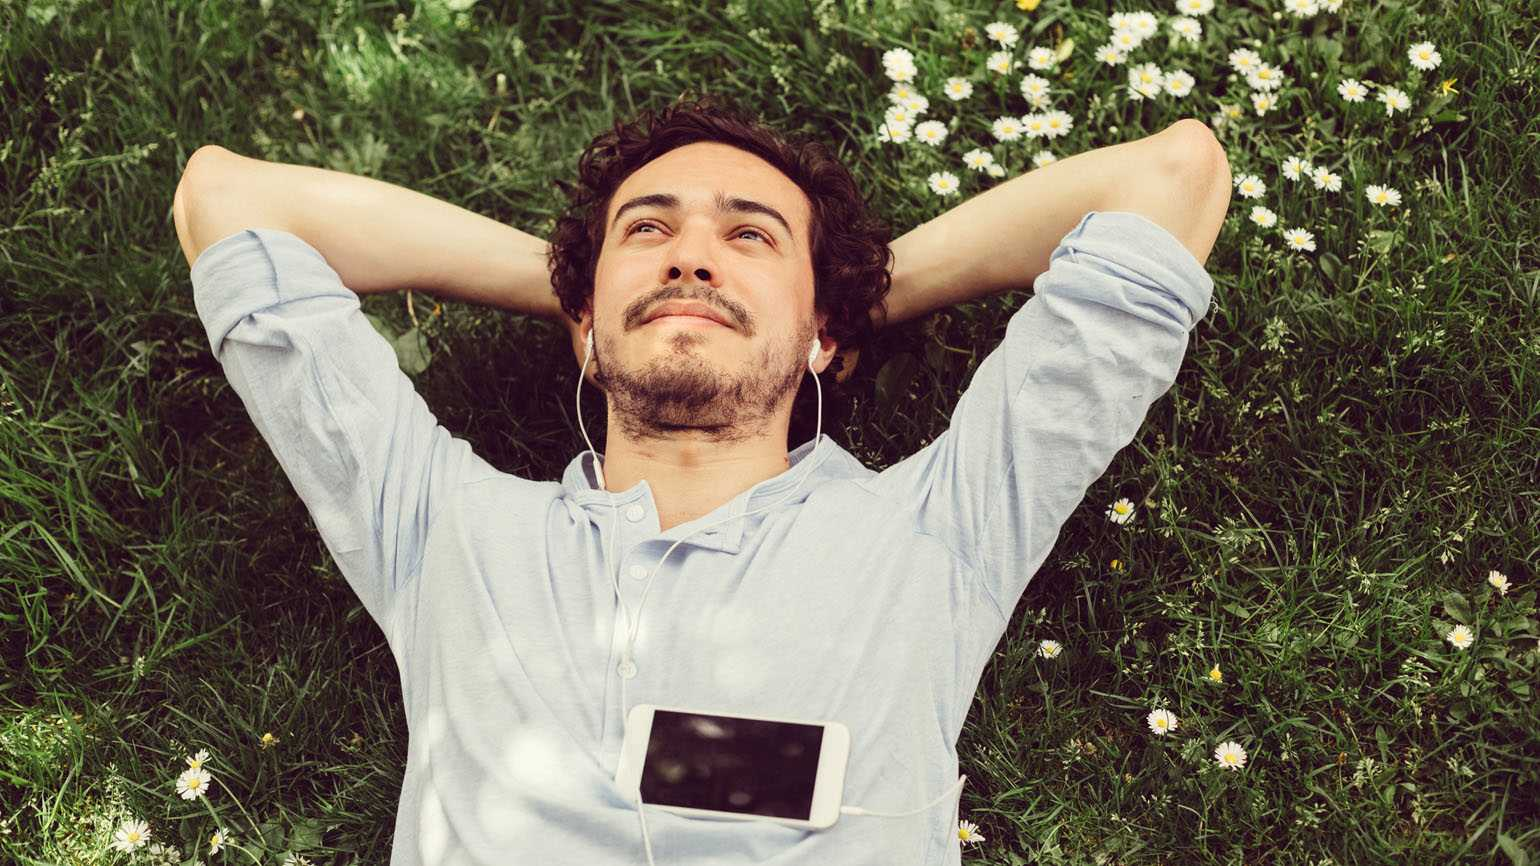 A man relaxing on the grass while listening to music.